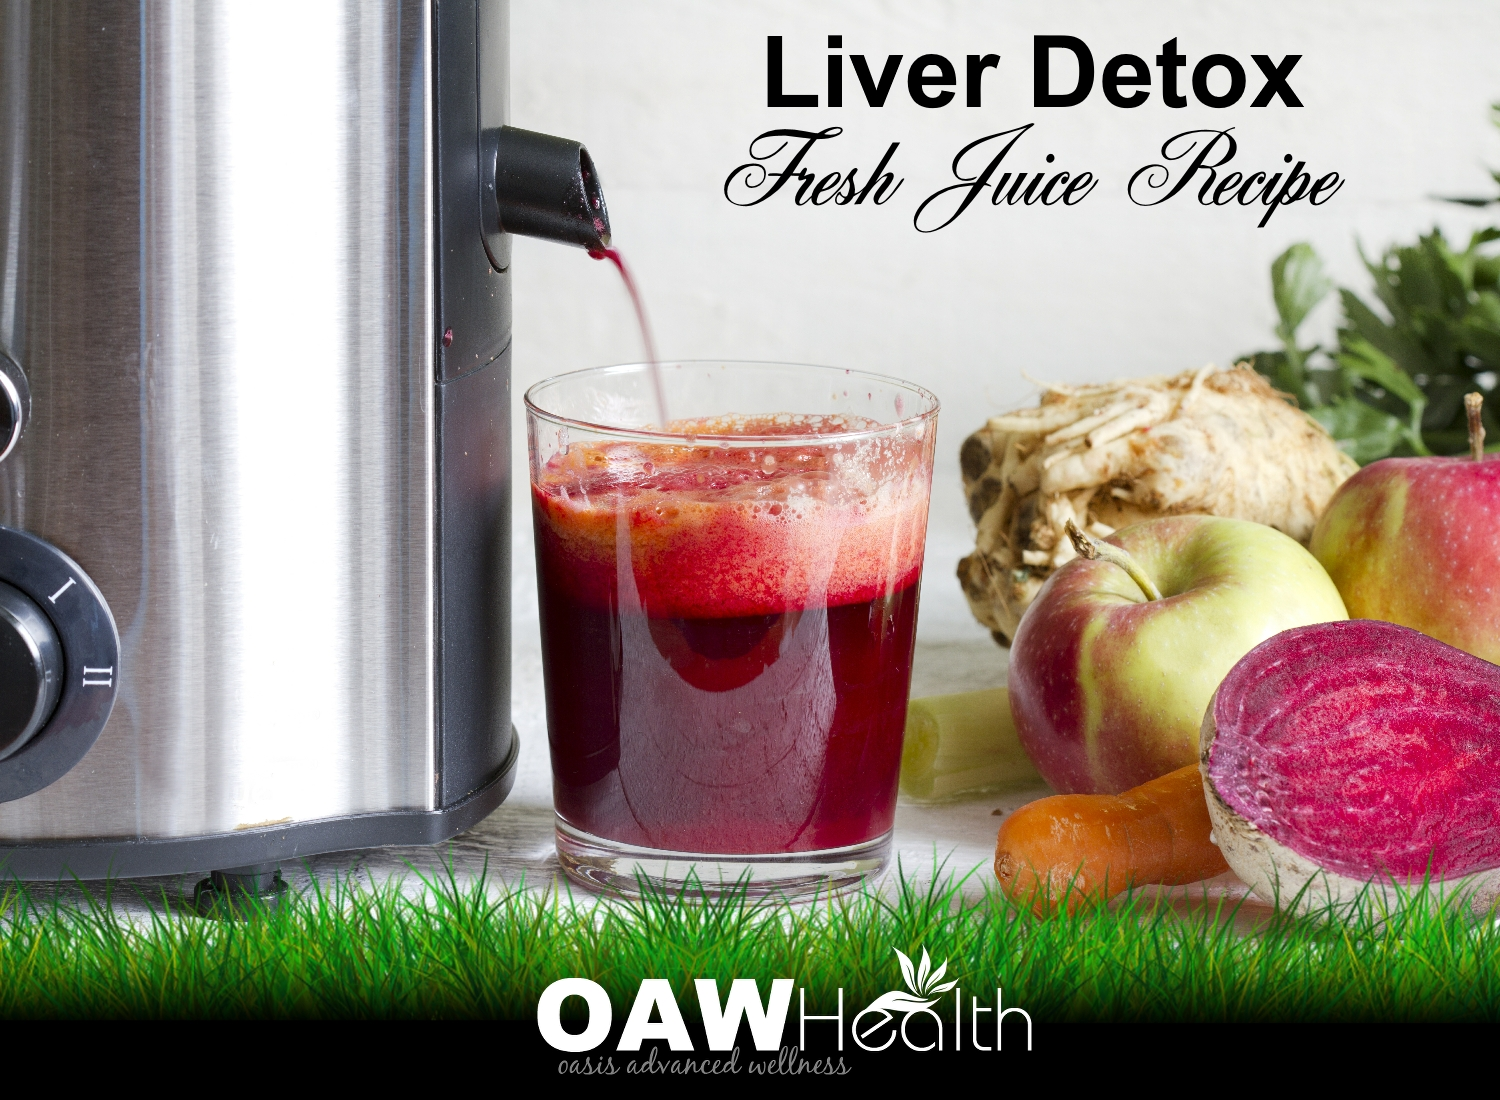 Liver Detox Juice Recipe – Carrot, Beet, Apple, Celery